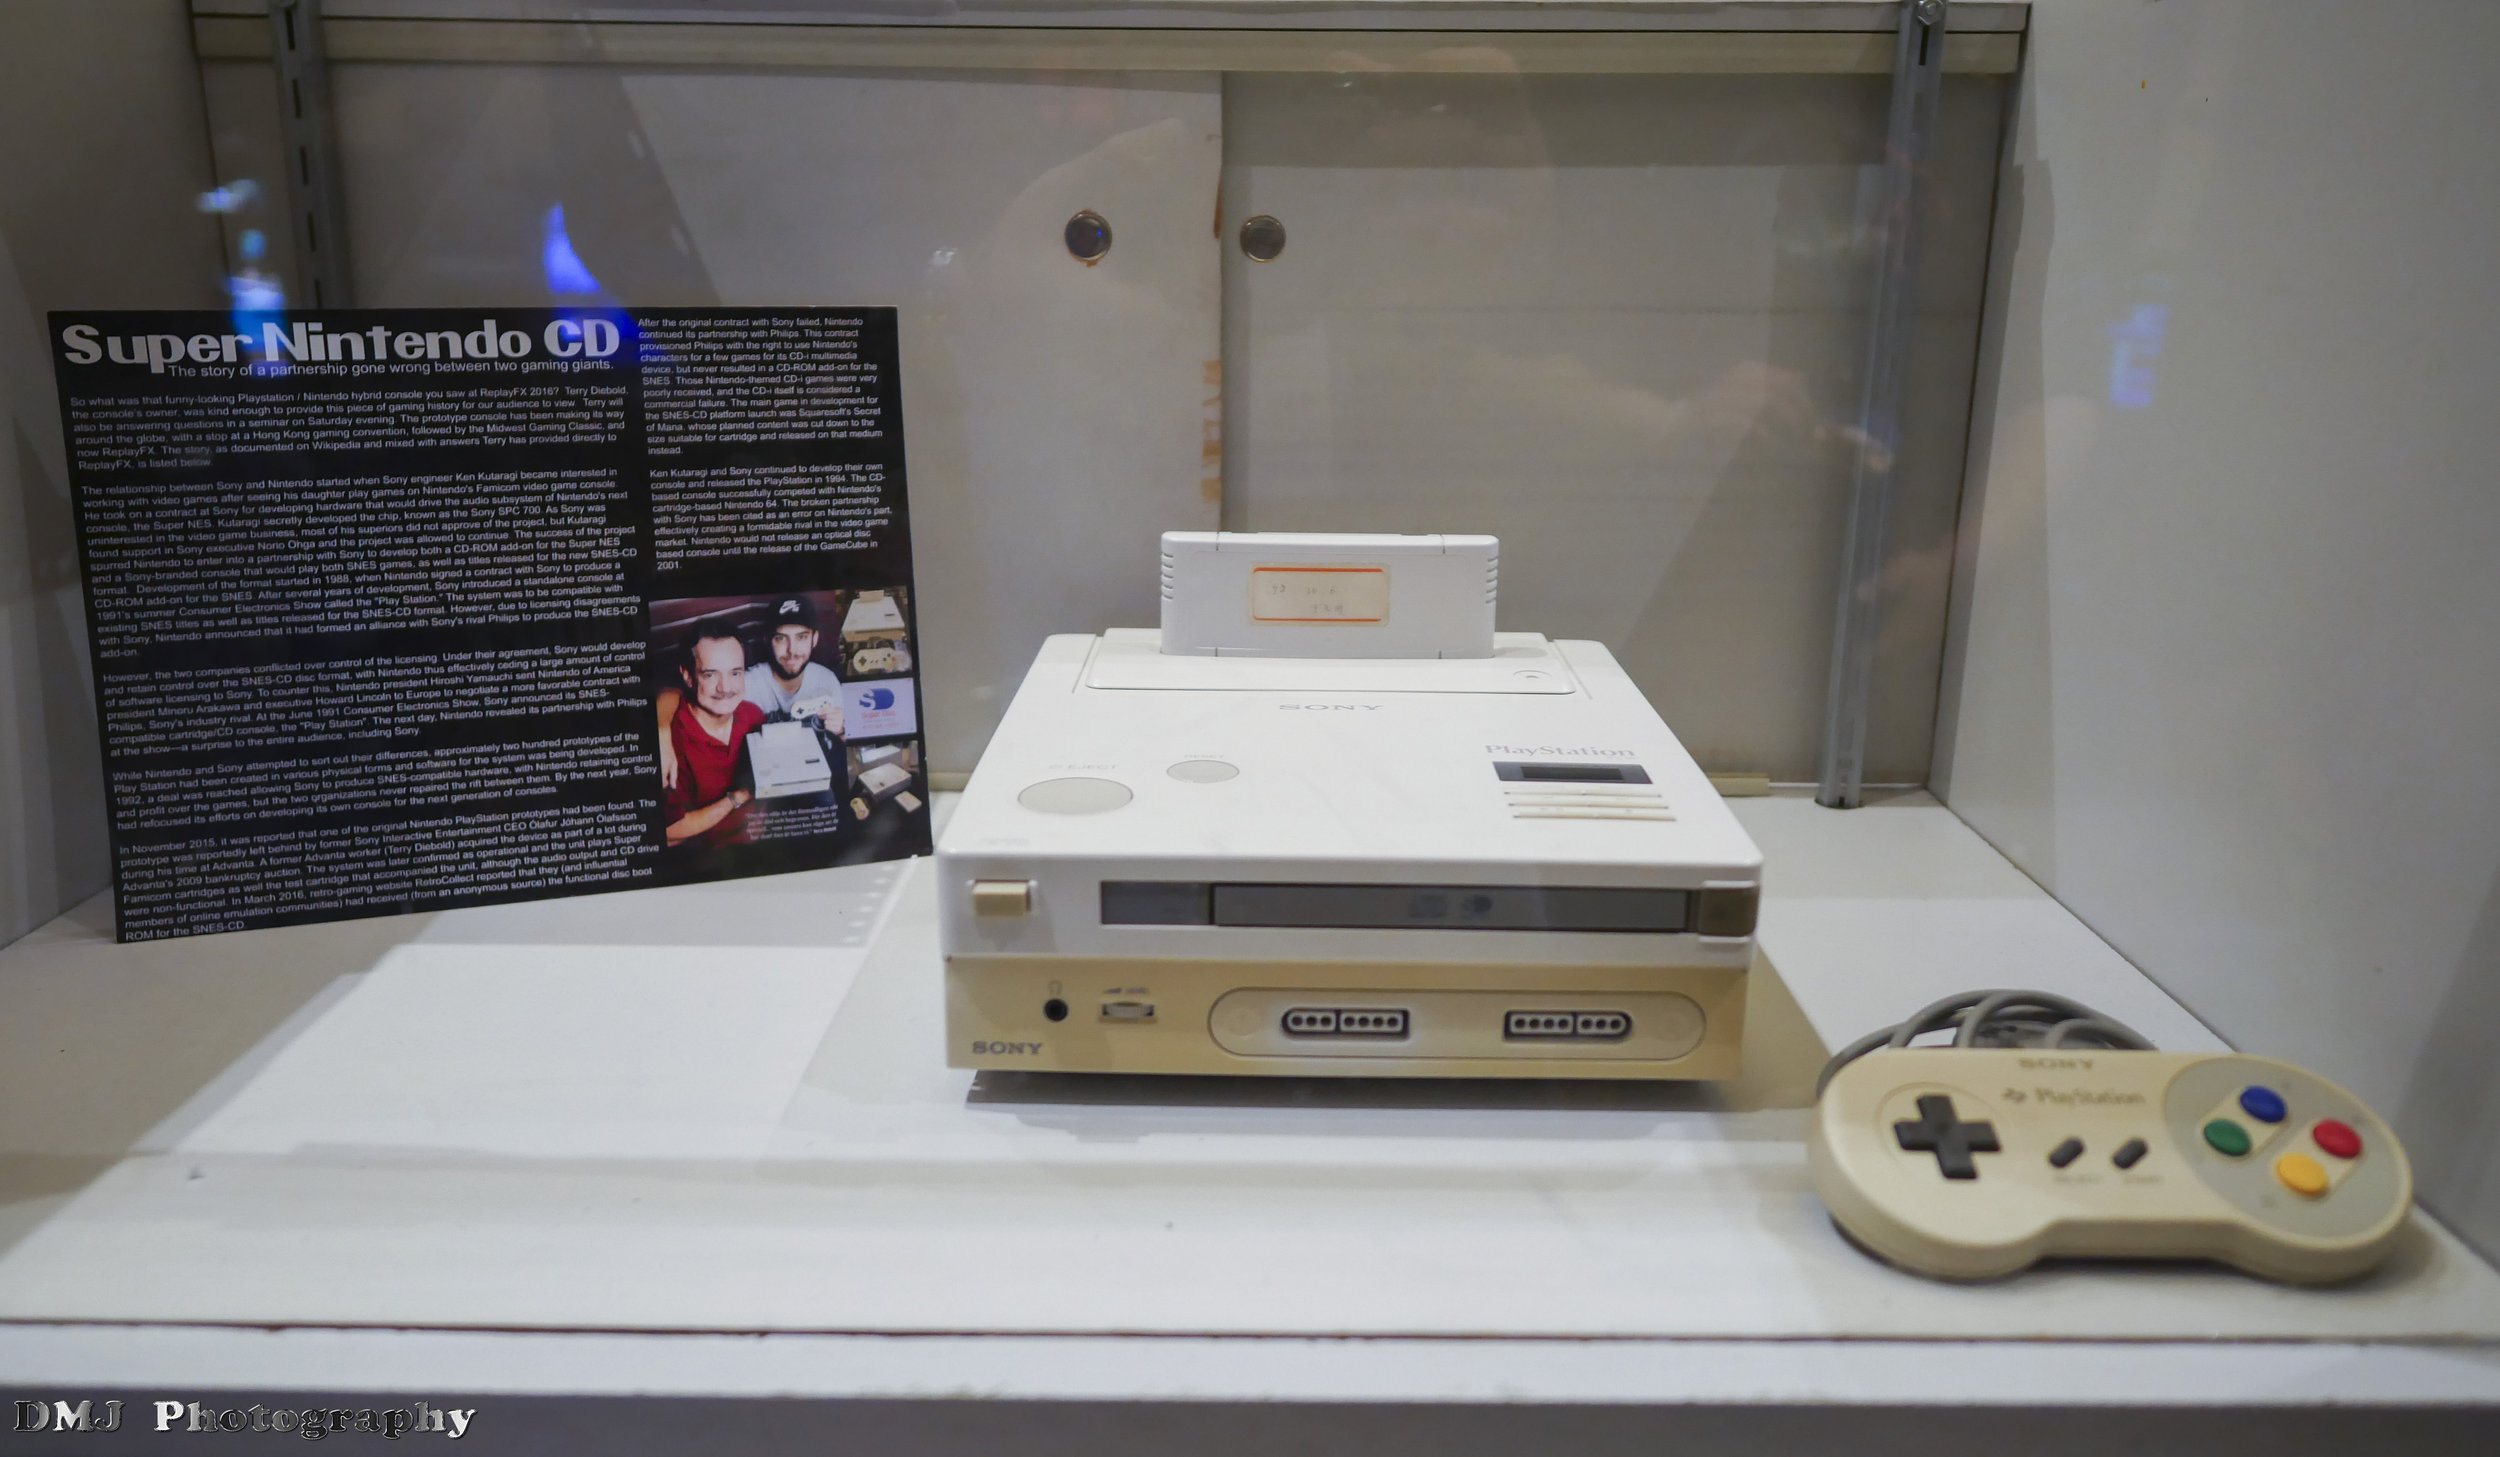 The fabled Super Nintendo CD prototype